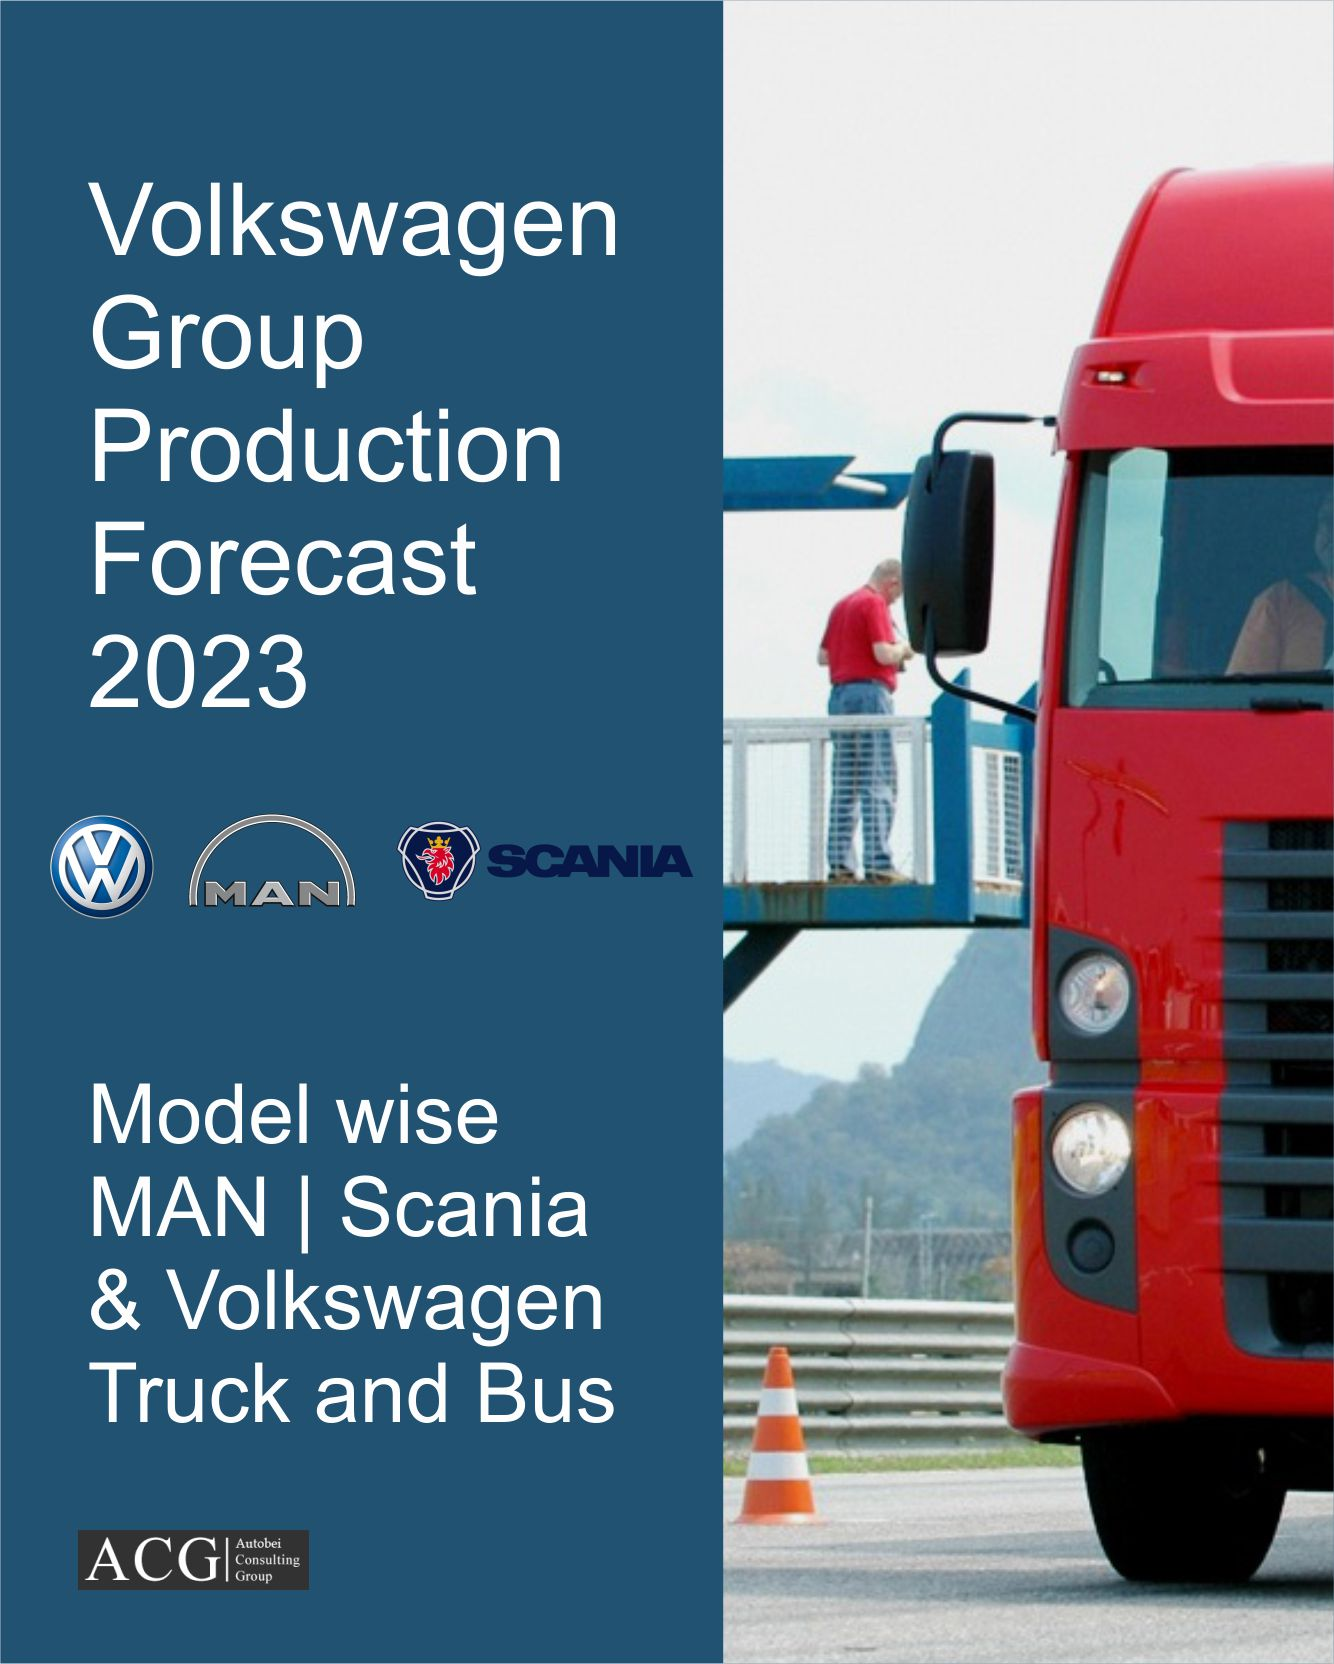 MAN, Scania and VW Truck and Bus Model wise Global Market Production Forecast